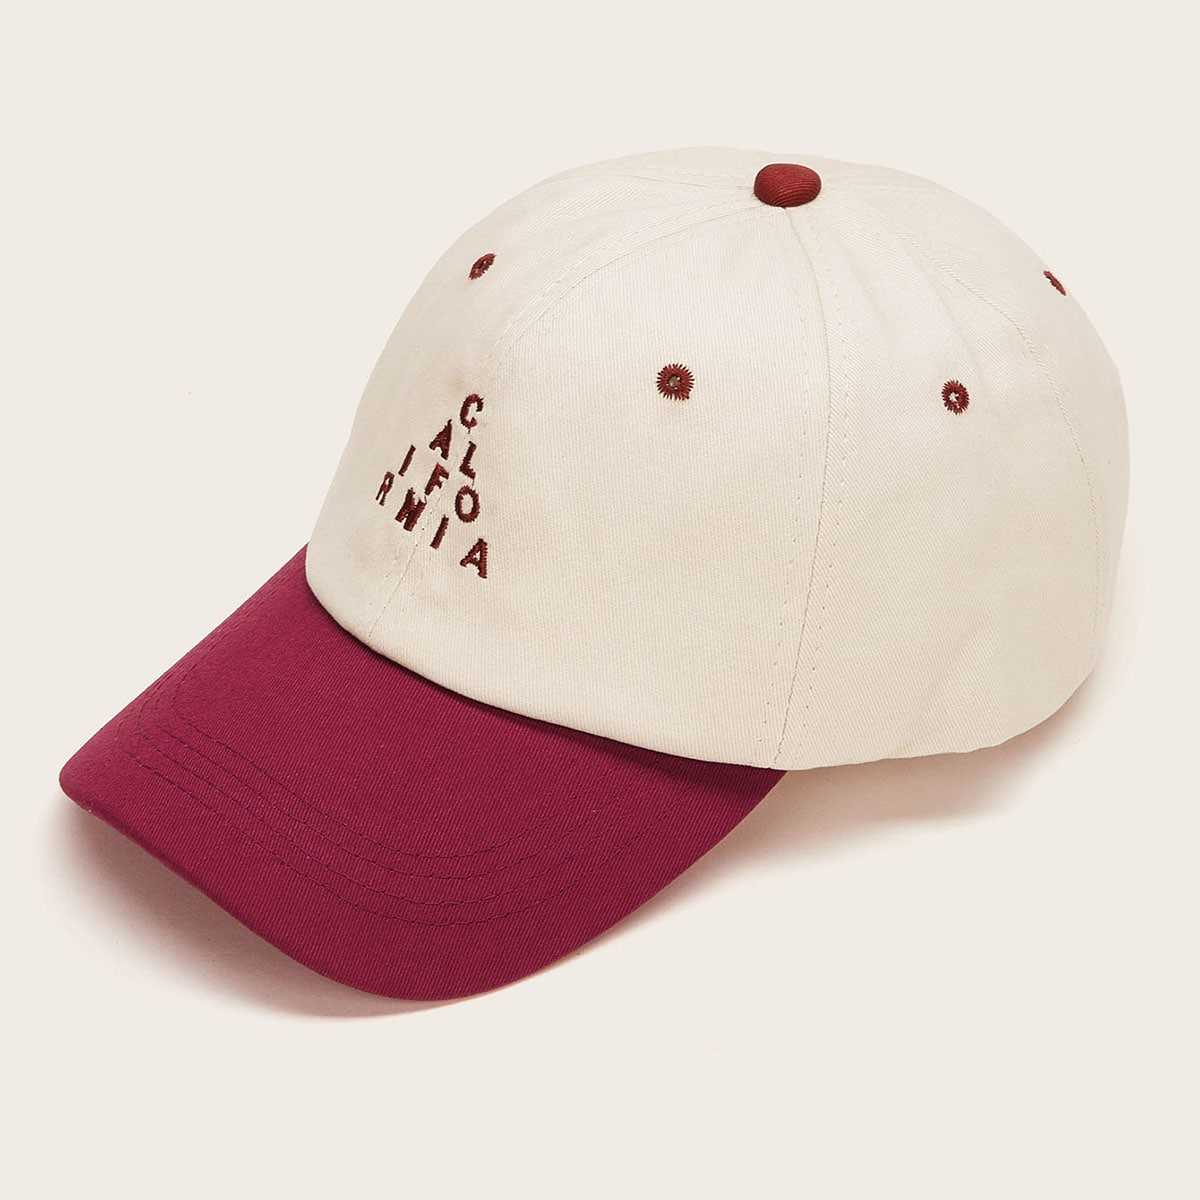 Guys Letter Embroidery Baseball Cap in Multicolor by ROMWE on GOOFASH